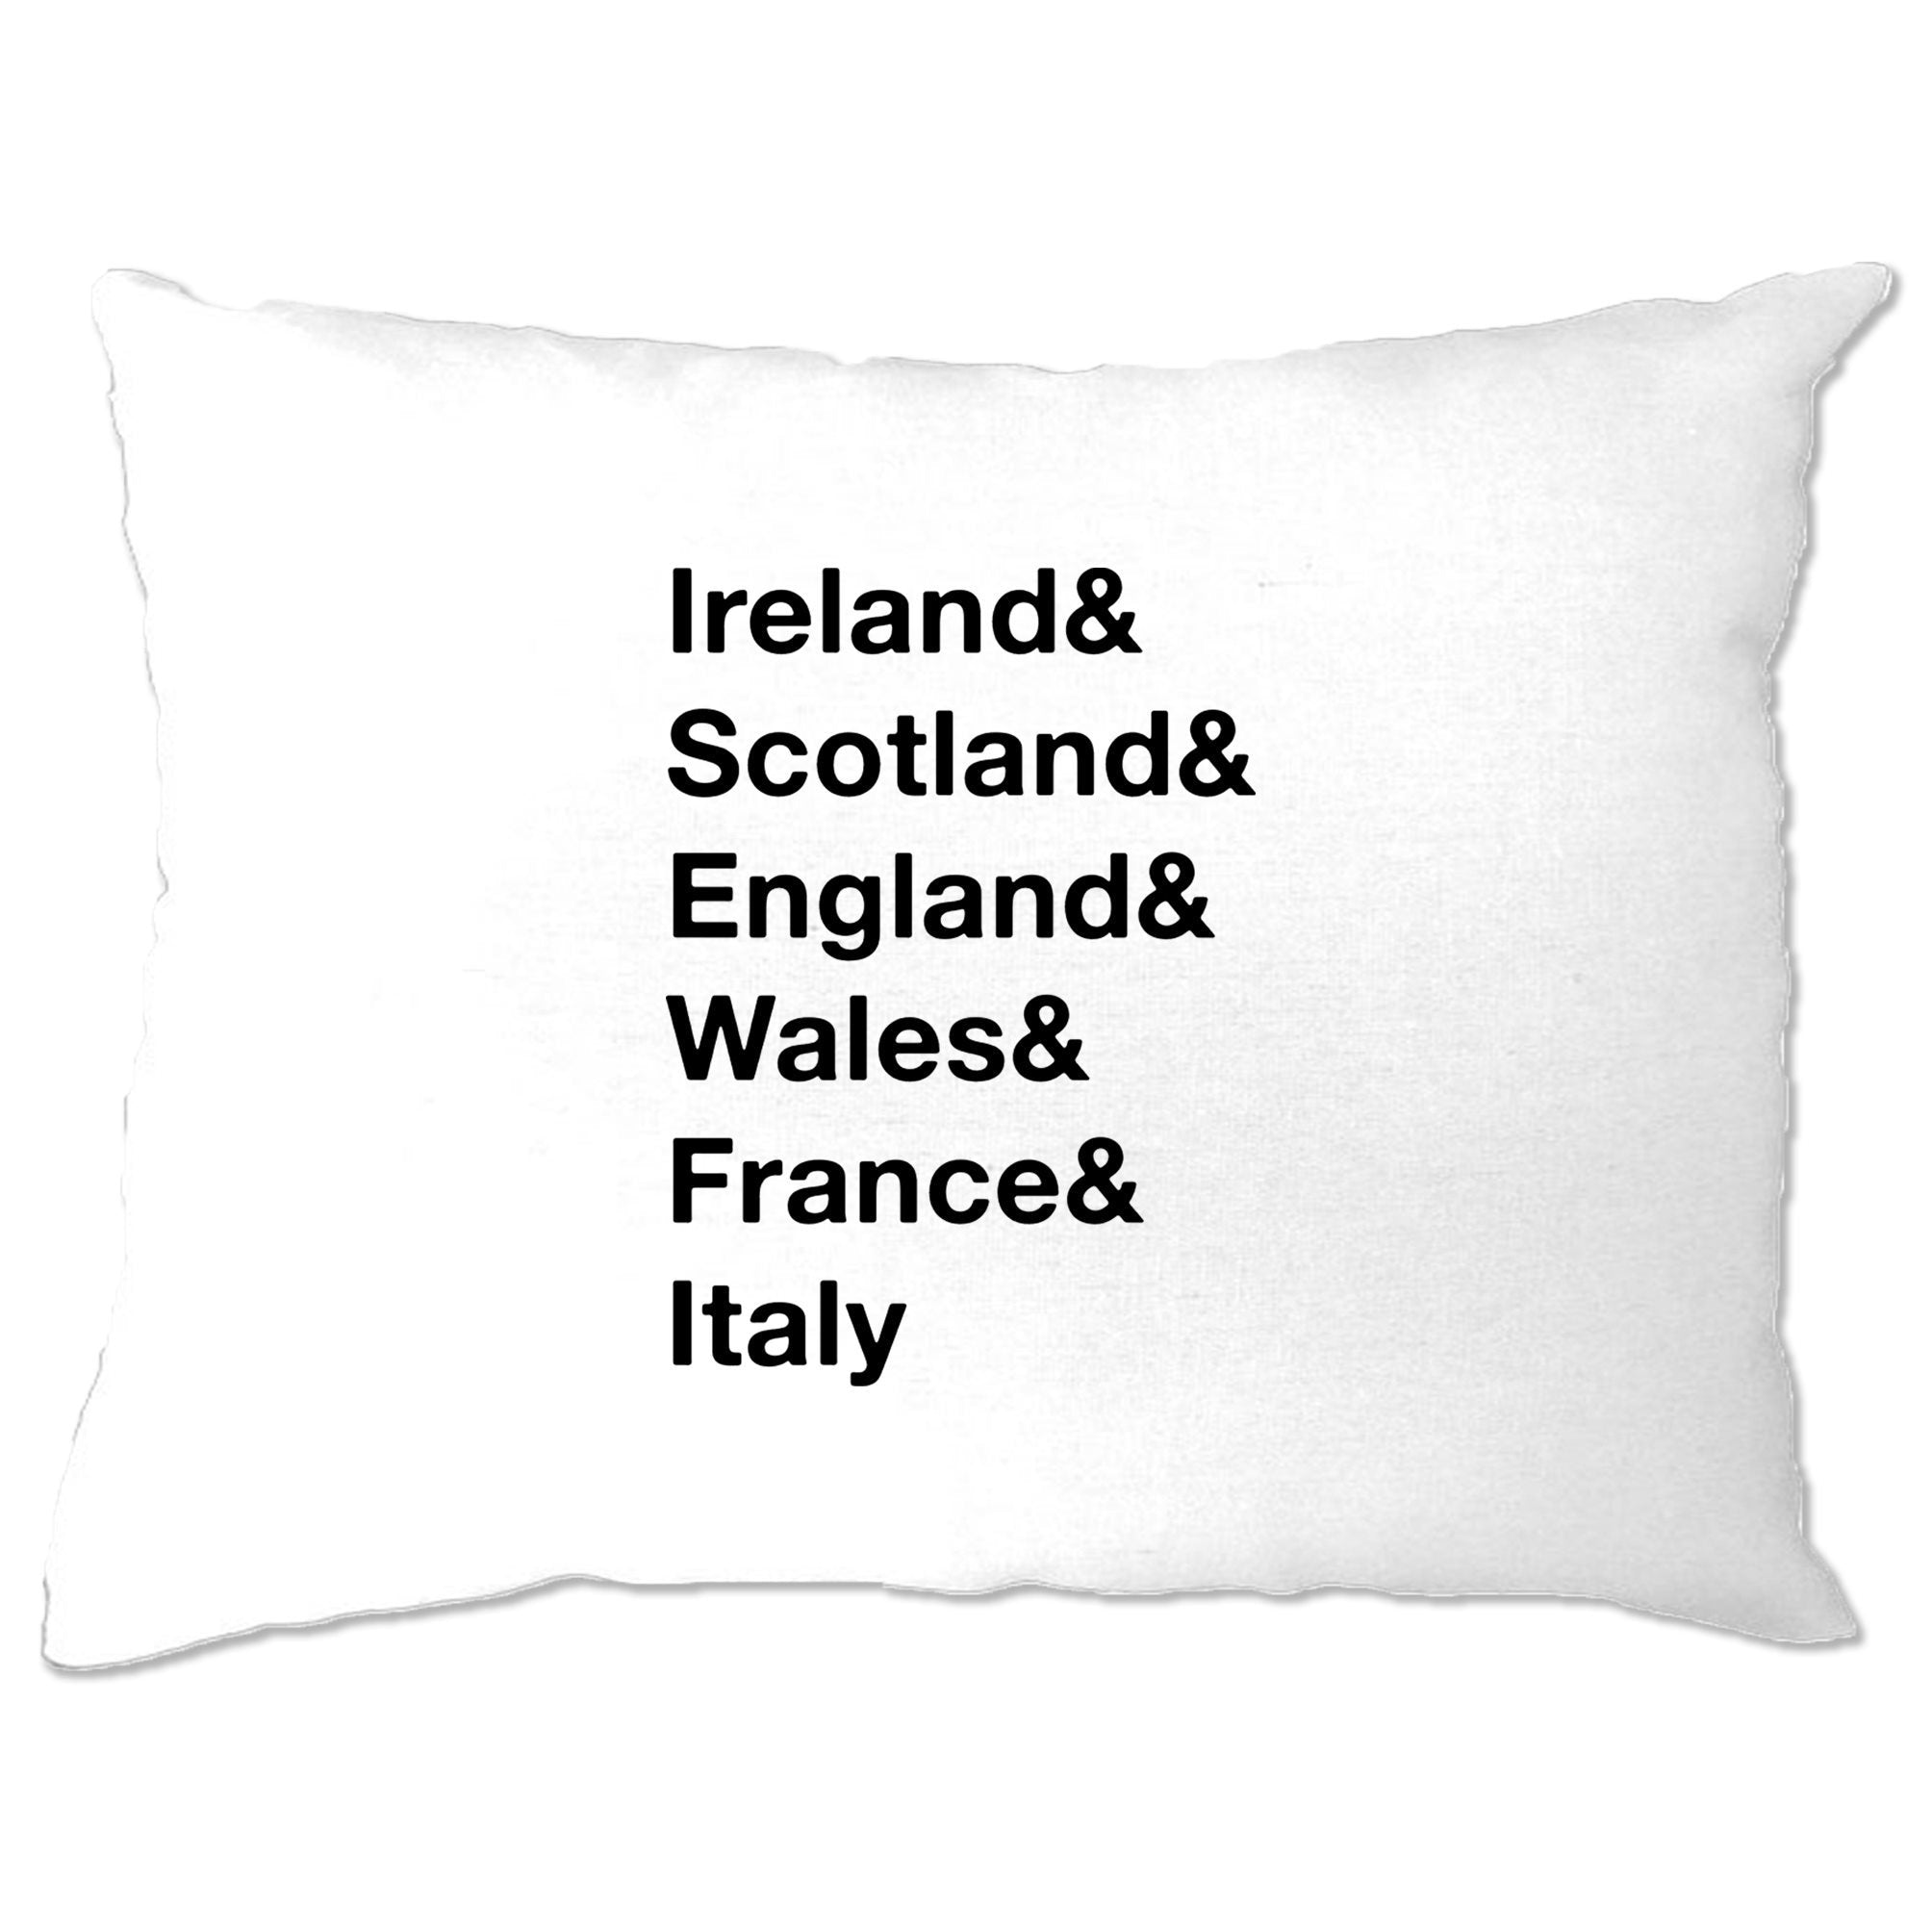 The Six Nations Pillow Case Ireland, Scotland, England